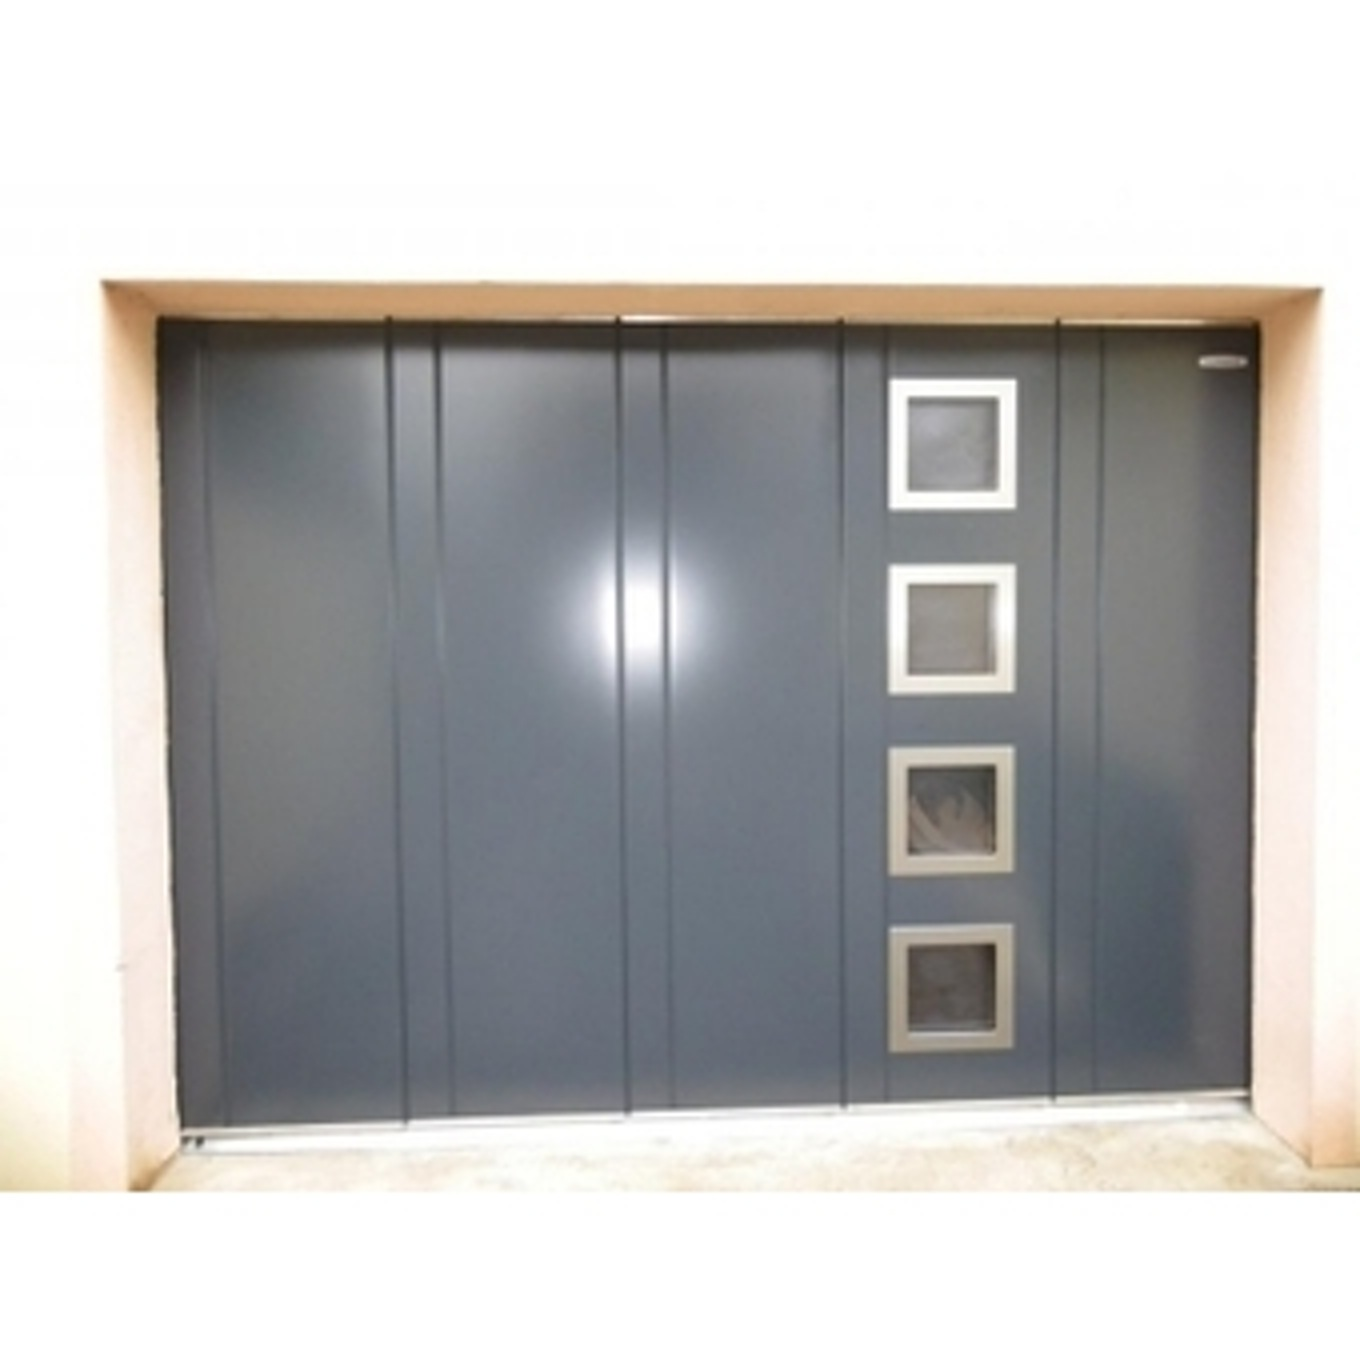 Serrure porte de garage brico depot isolation id es - Isolation porte de garage coulissante ...